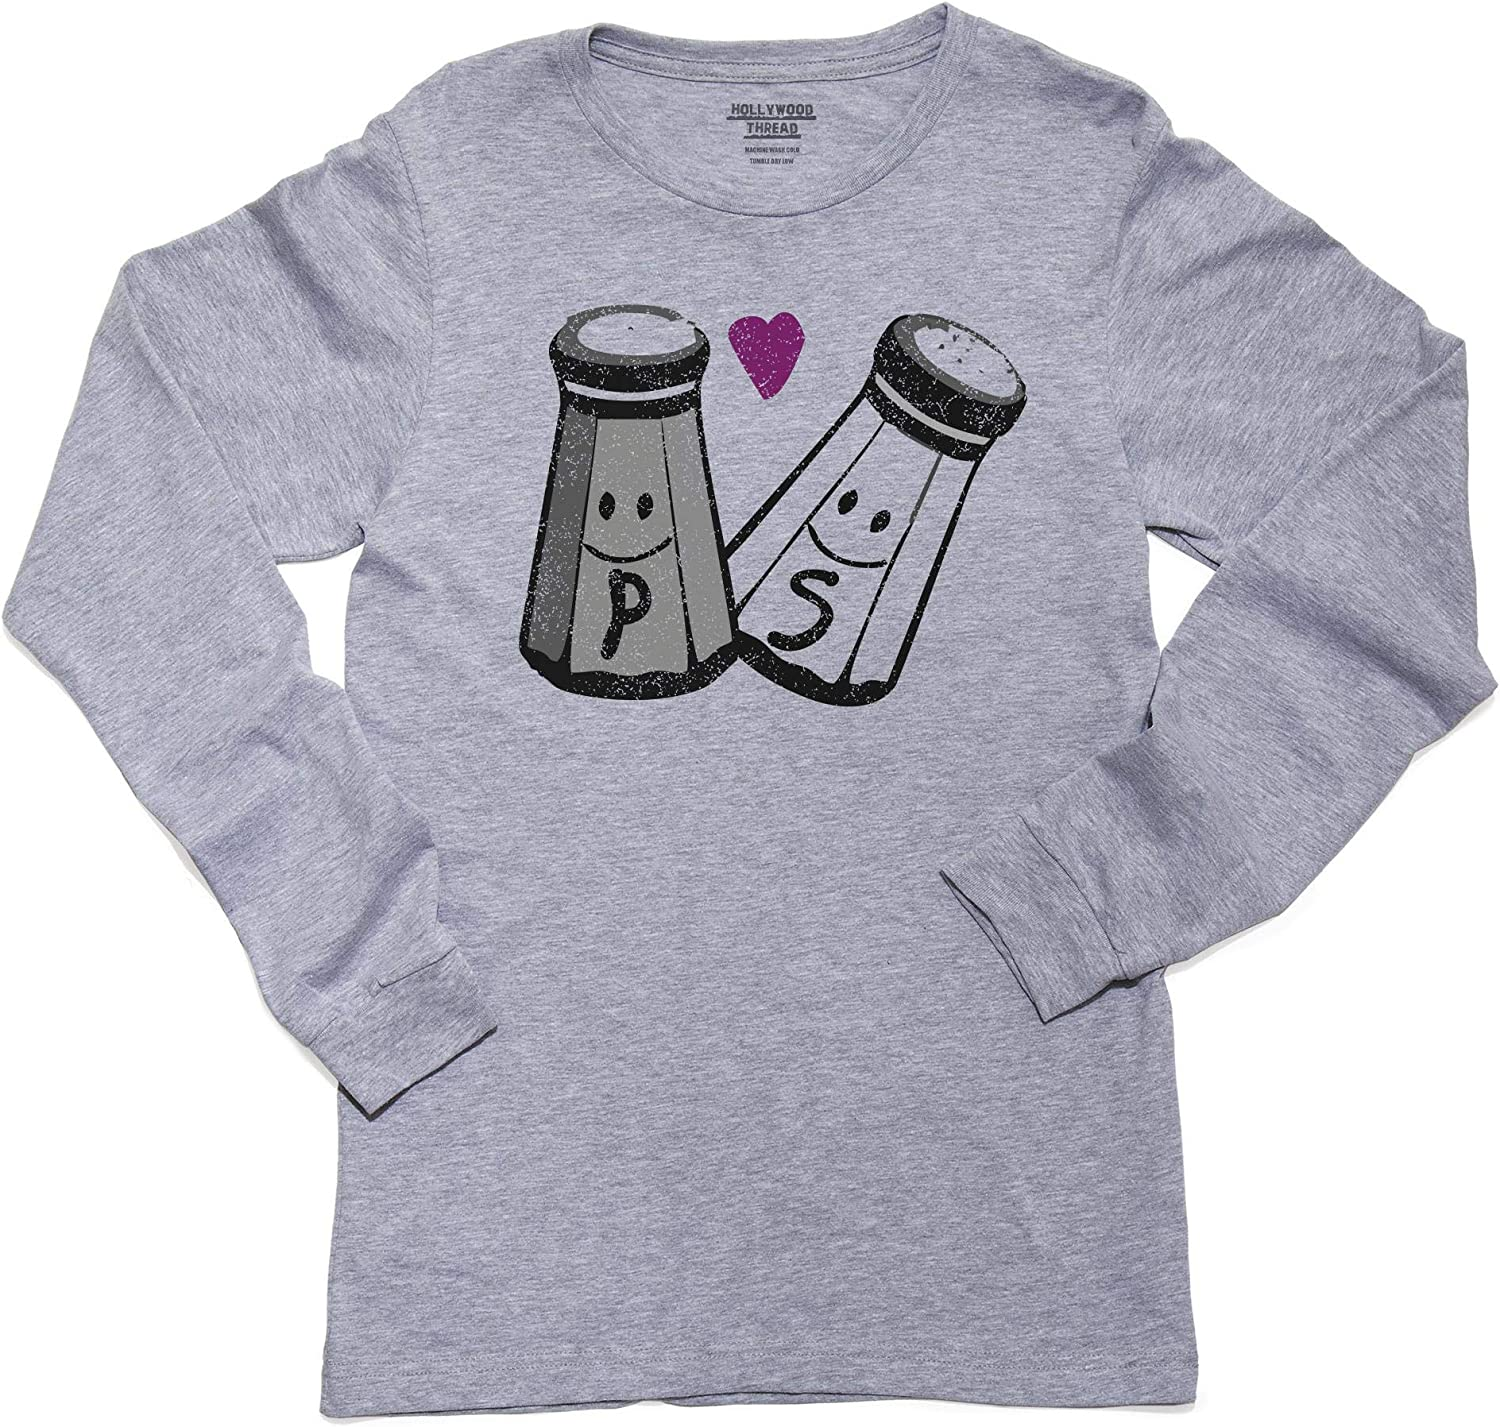 inktastic You Had Me at Pickles Toddler Long Sleeve T-Shirt